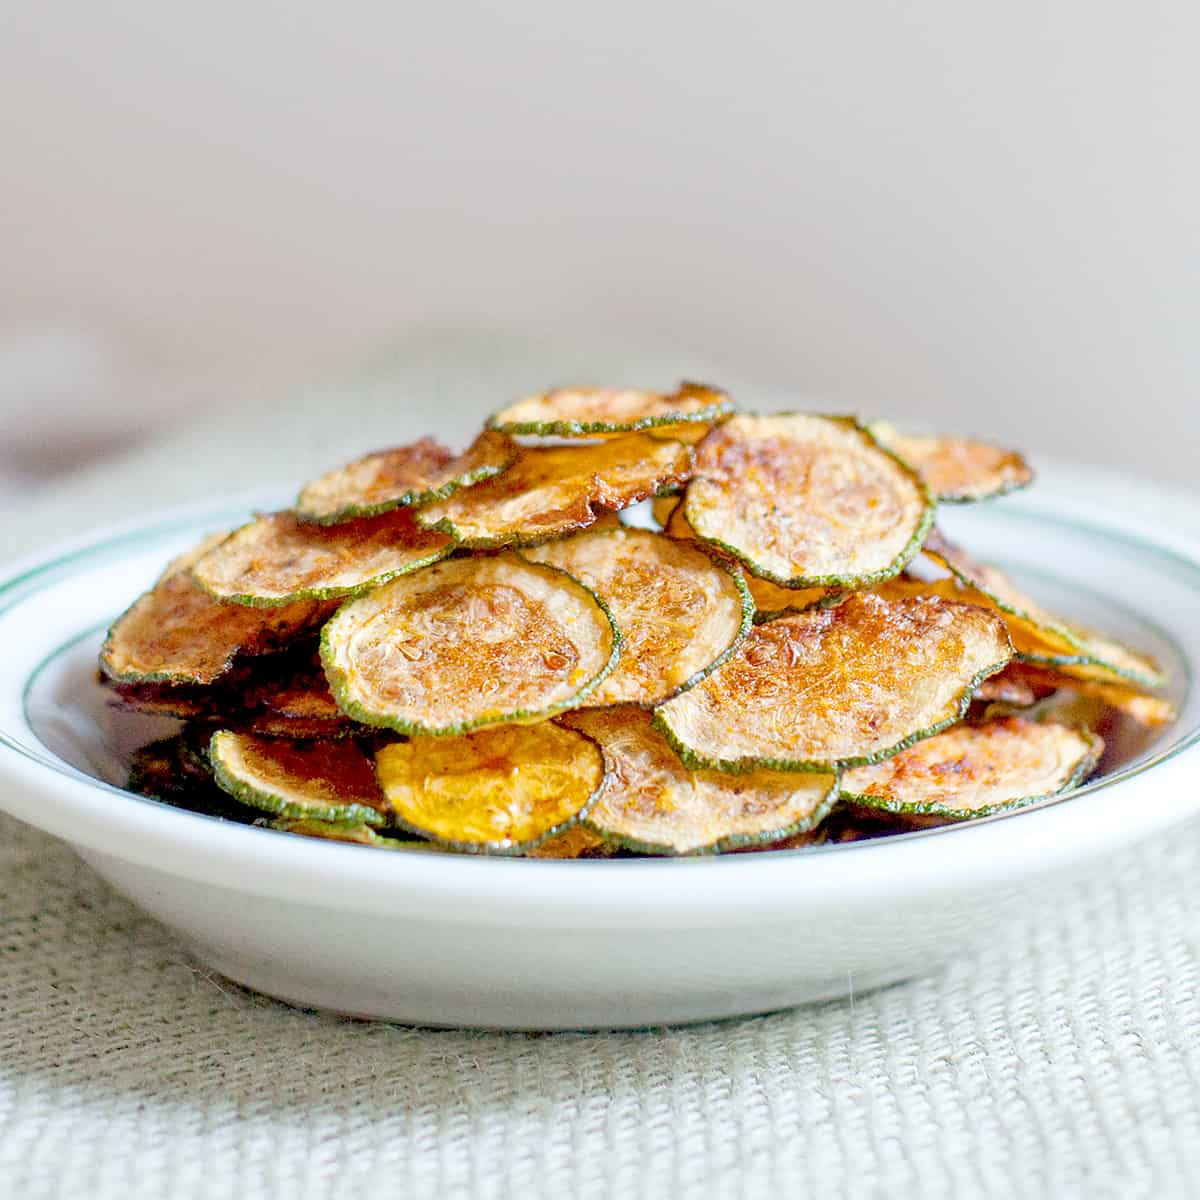 Baked zucchini chips stacked in a white bowl.